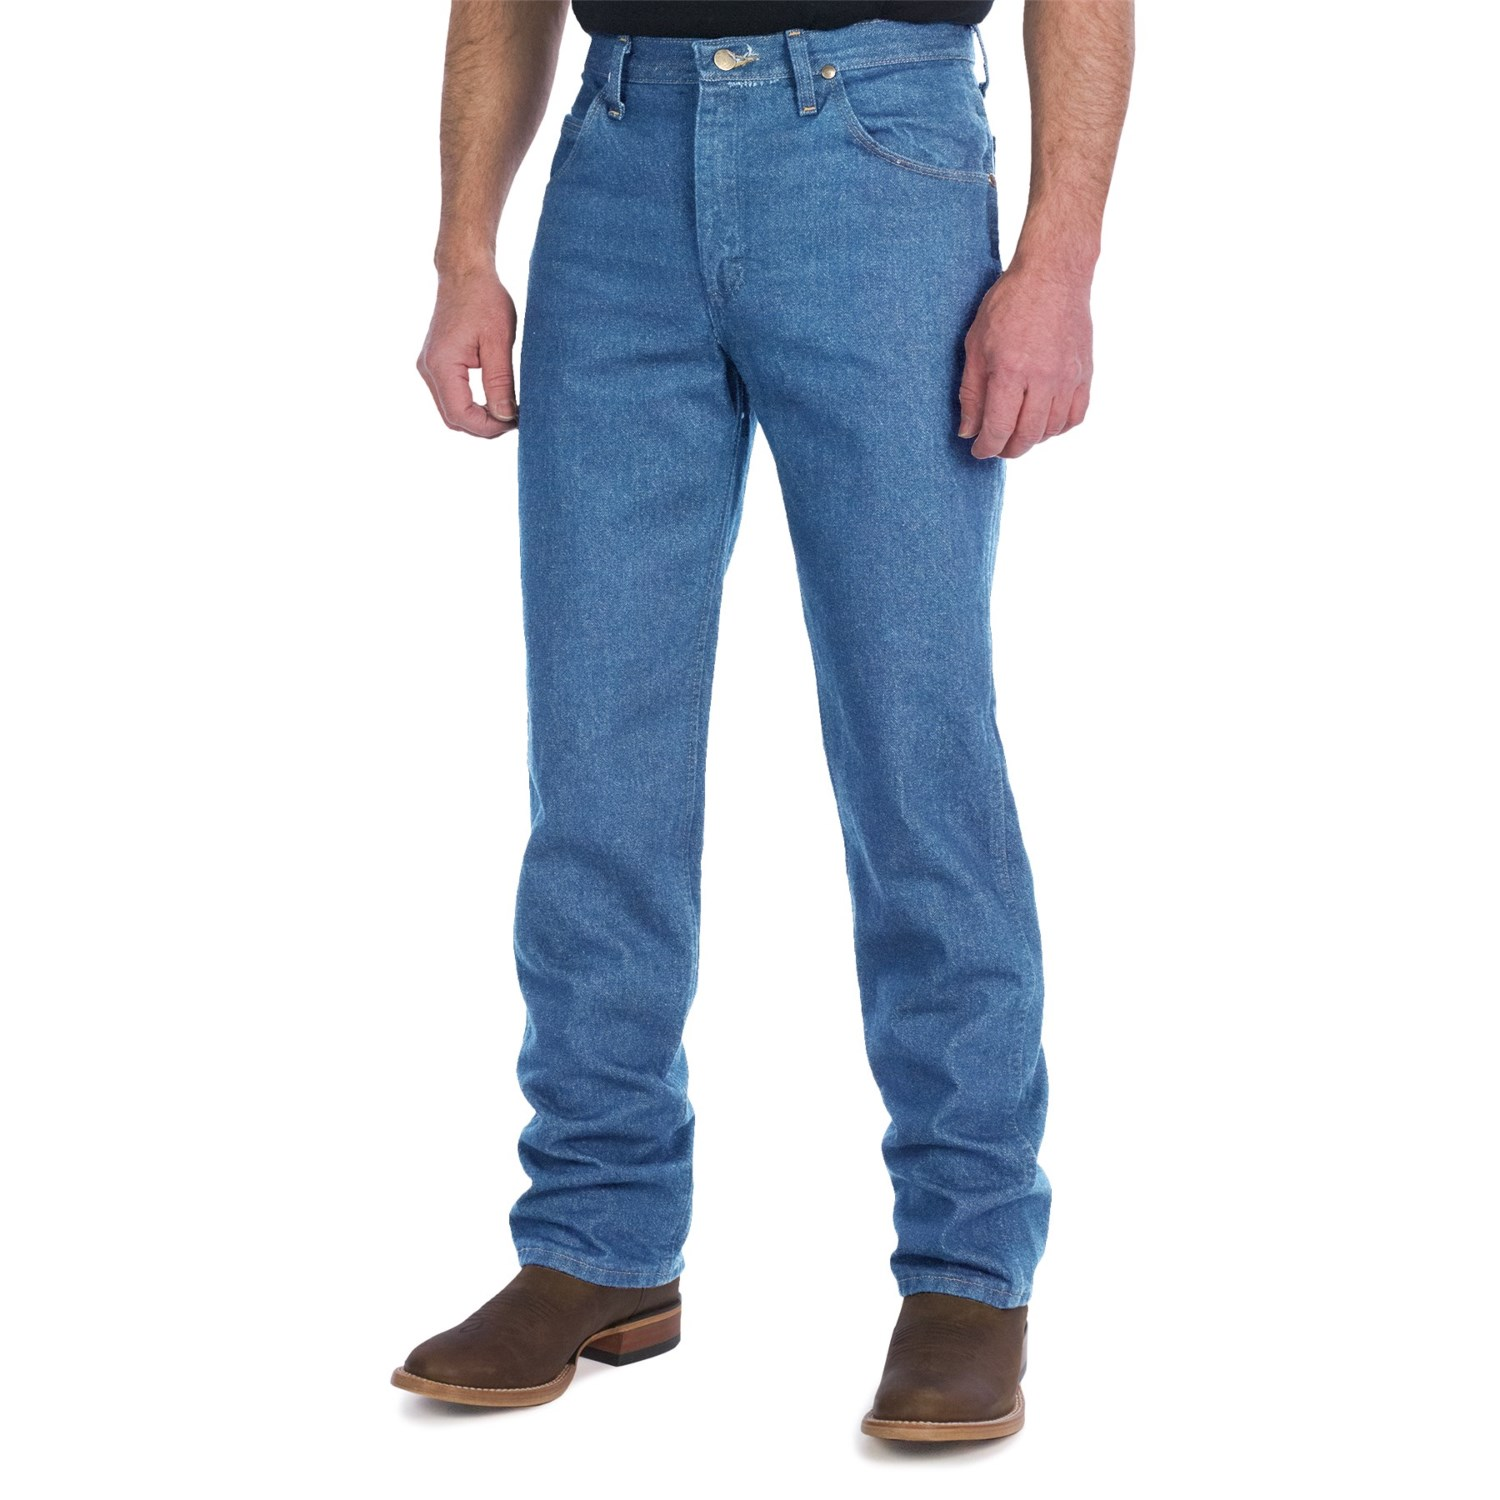 dab9bf2103 Wrangler Premium Performance Jeans (For Men) - Save 42%